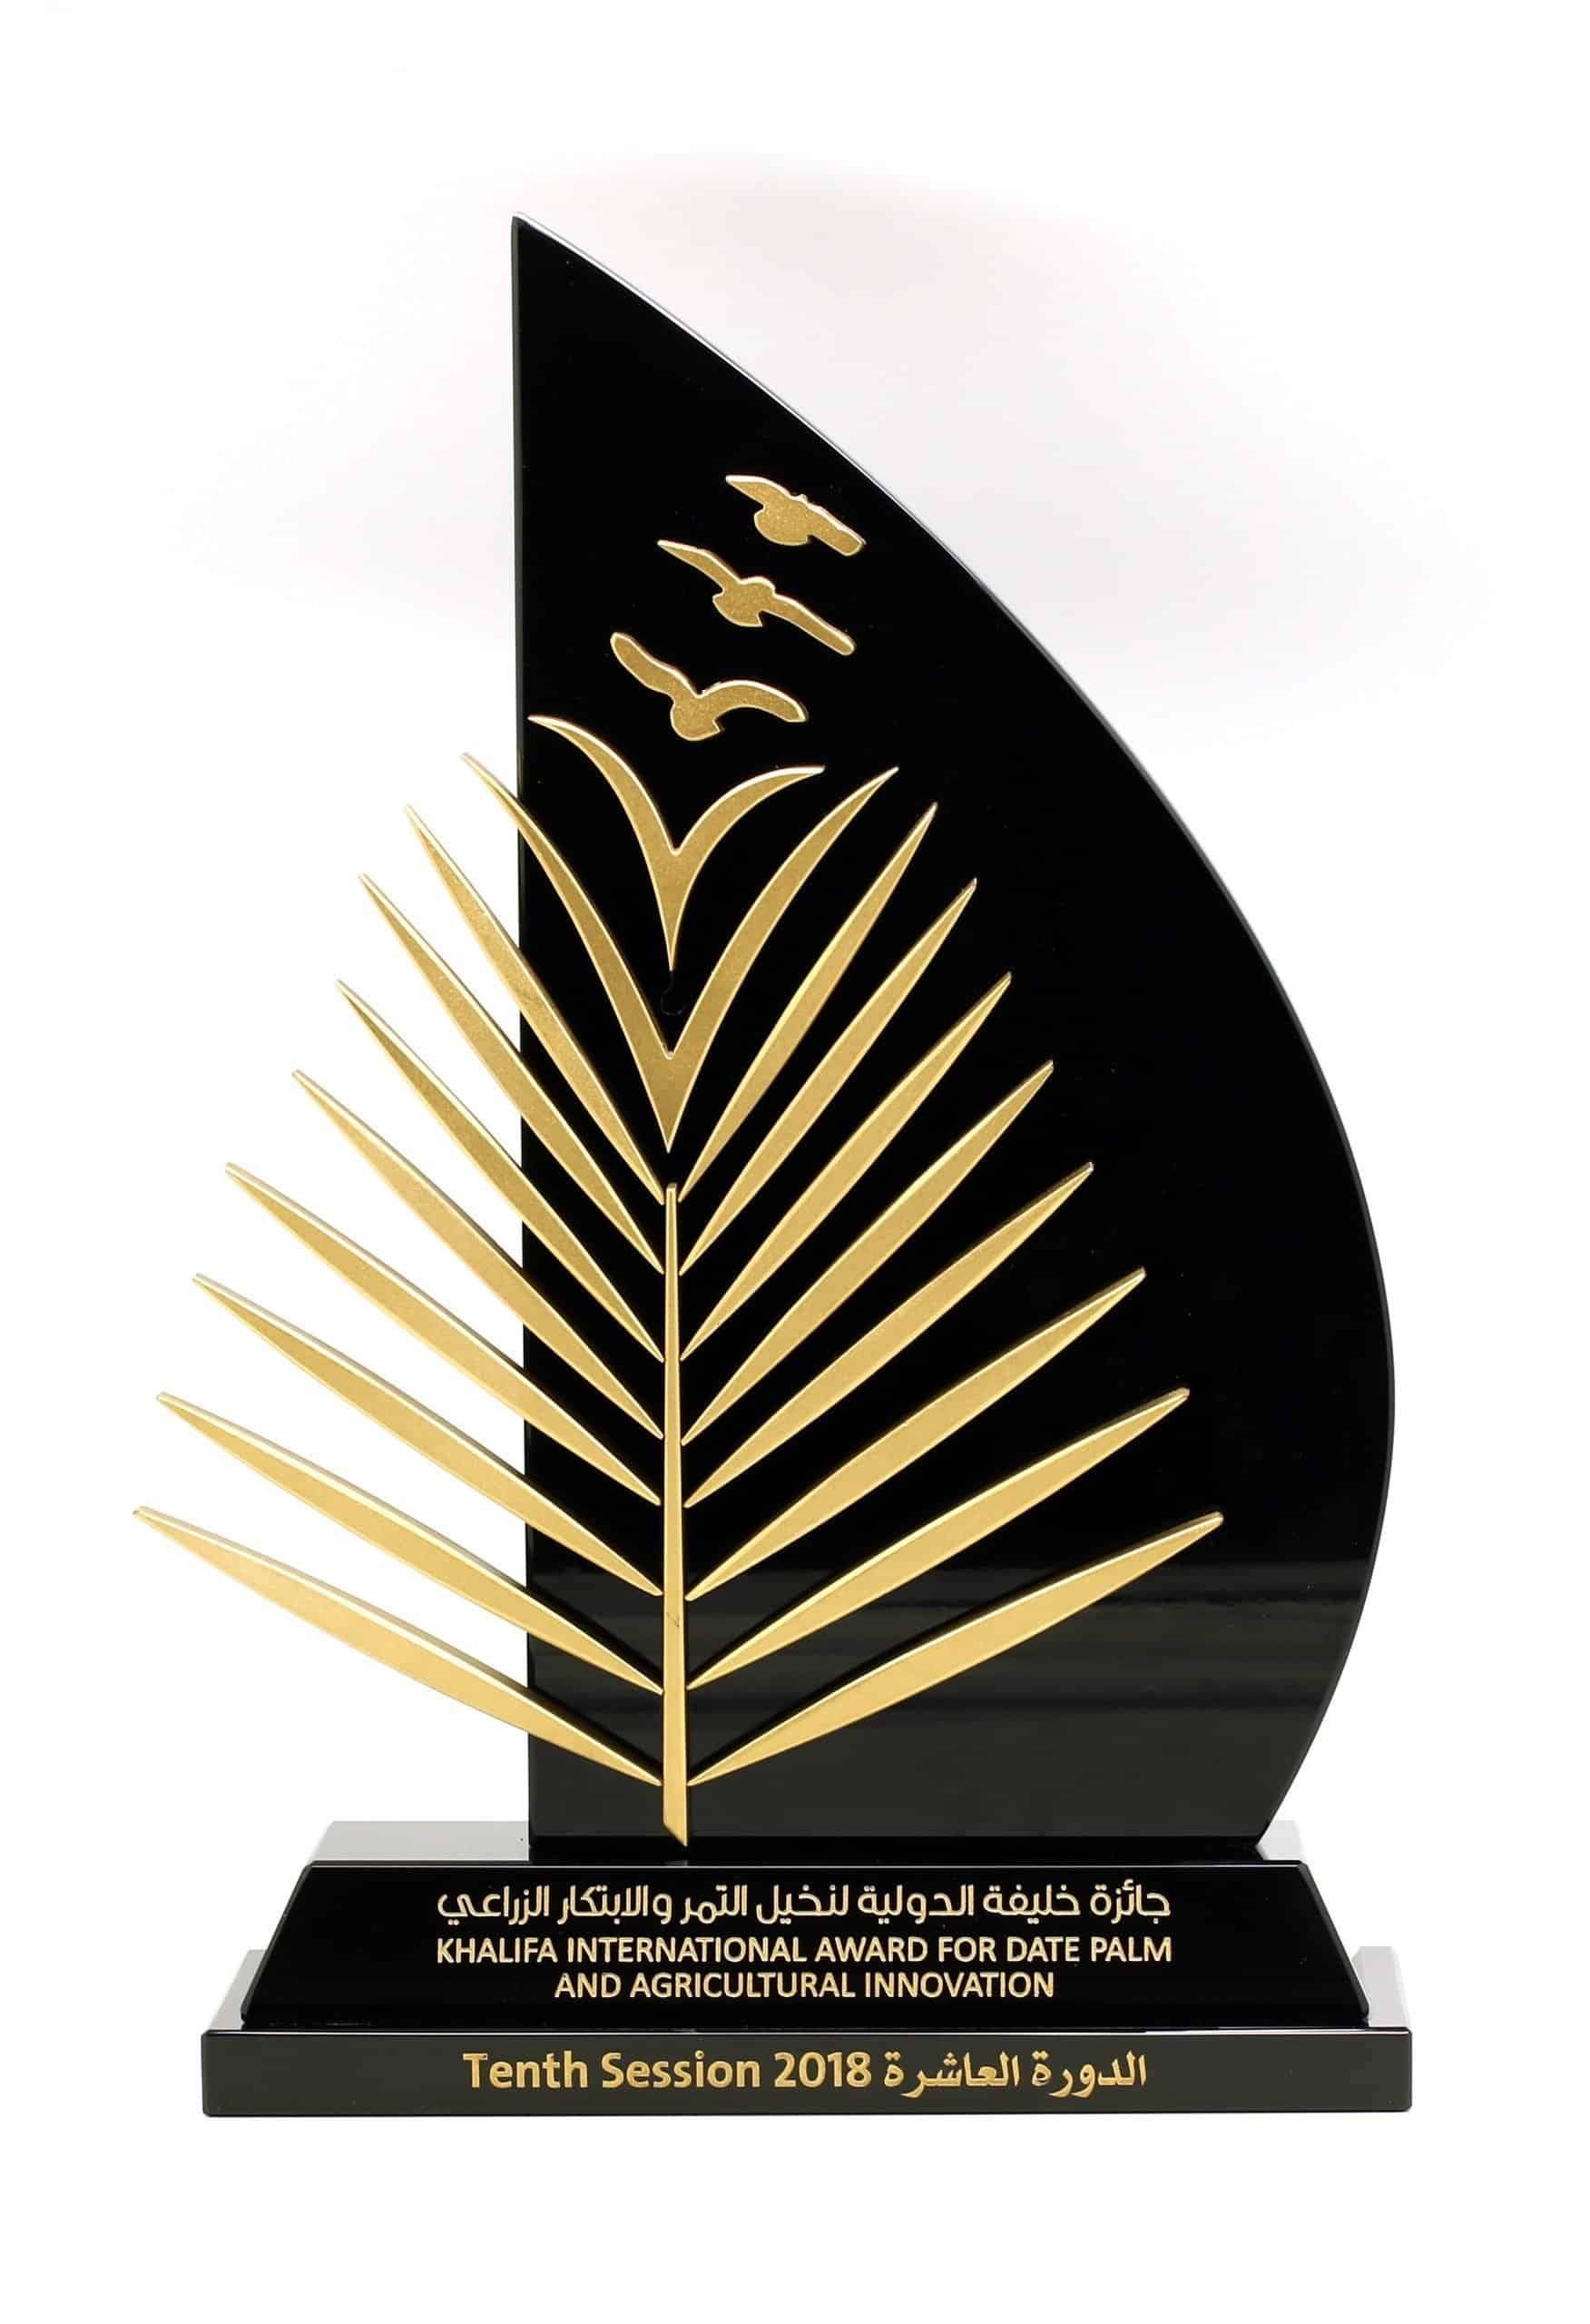 Khalifa International Award for Date Palm and Agricultural Innovation  2018